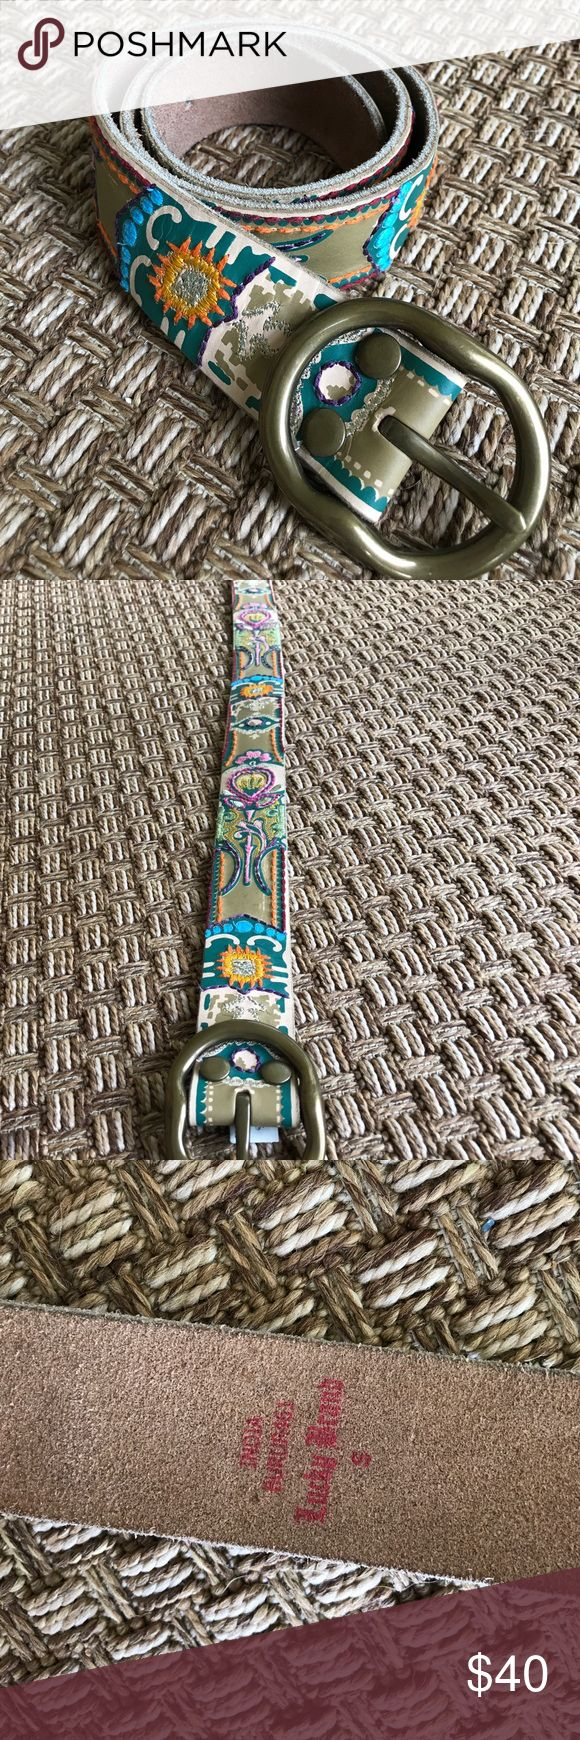 Lucky Brand Belt Beautiful embroidered and painted Lucky Brand belt. Tan and colorful. Never worn Lucky Brand Accessories Belts